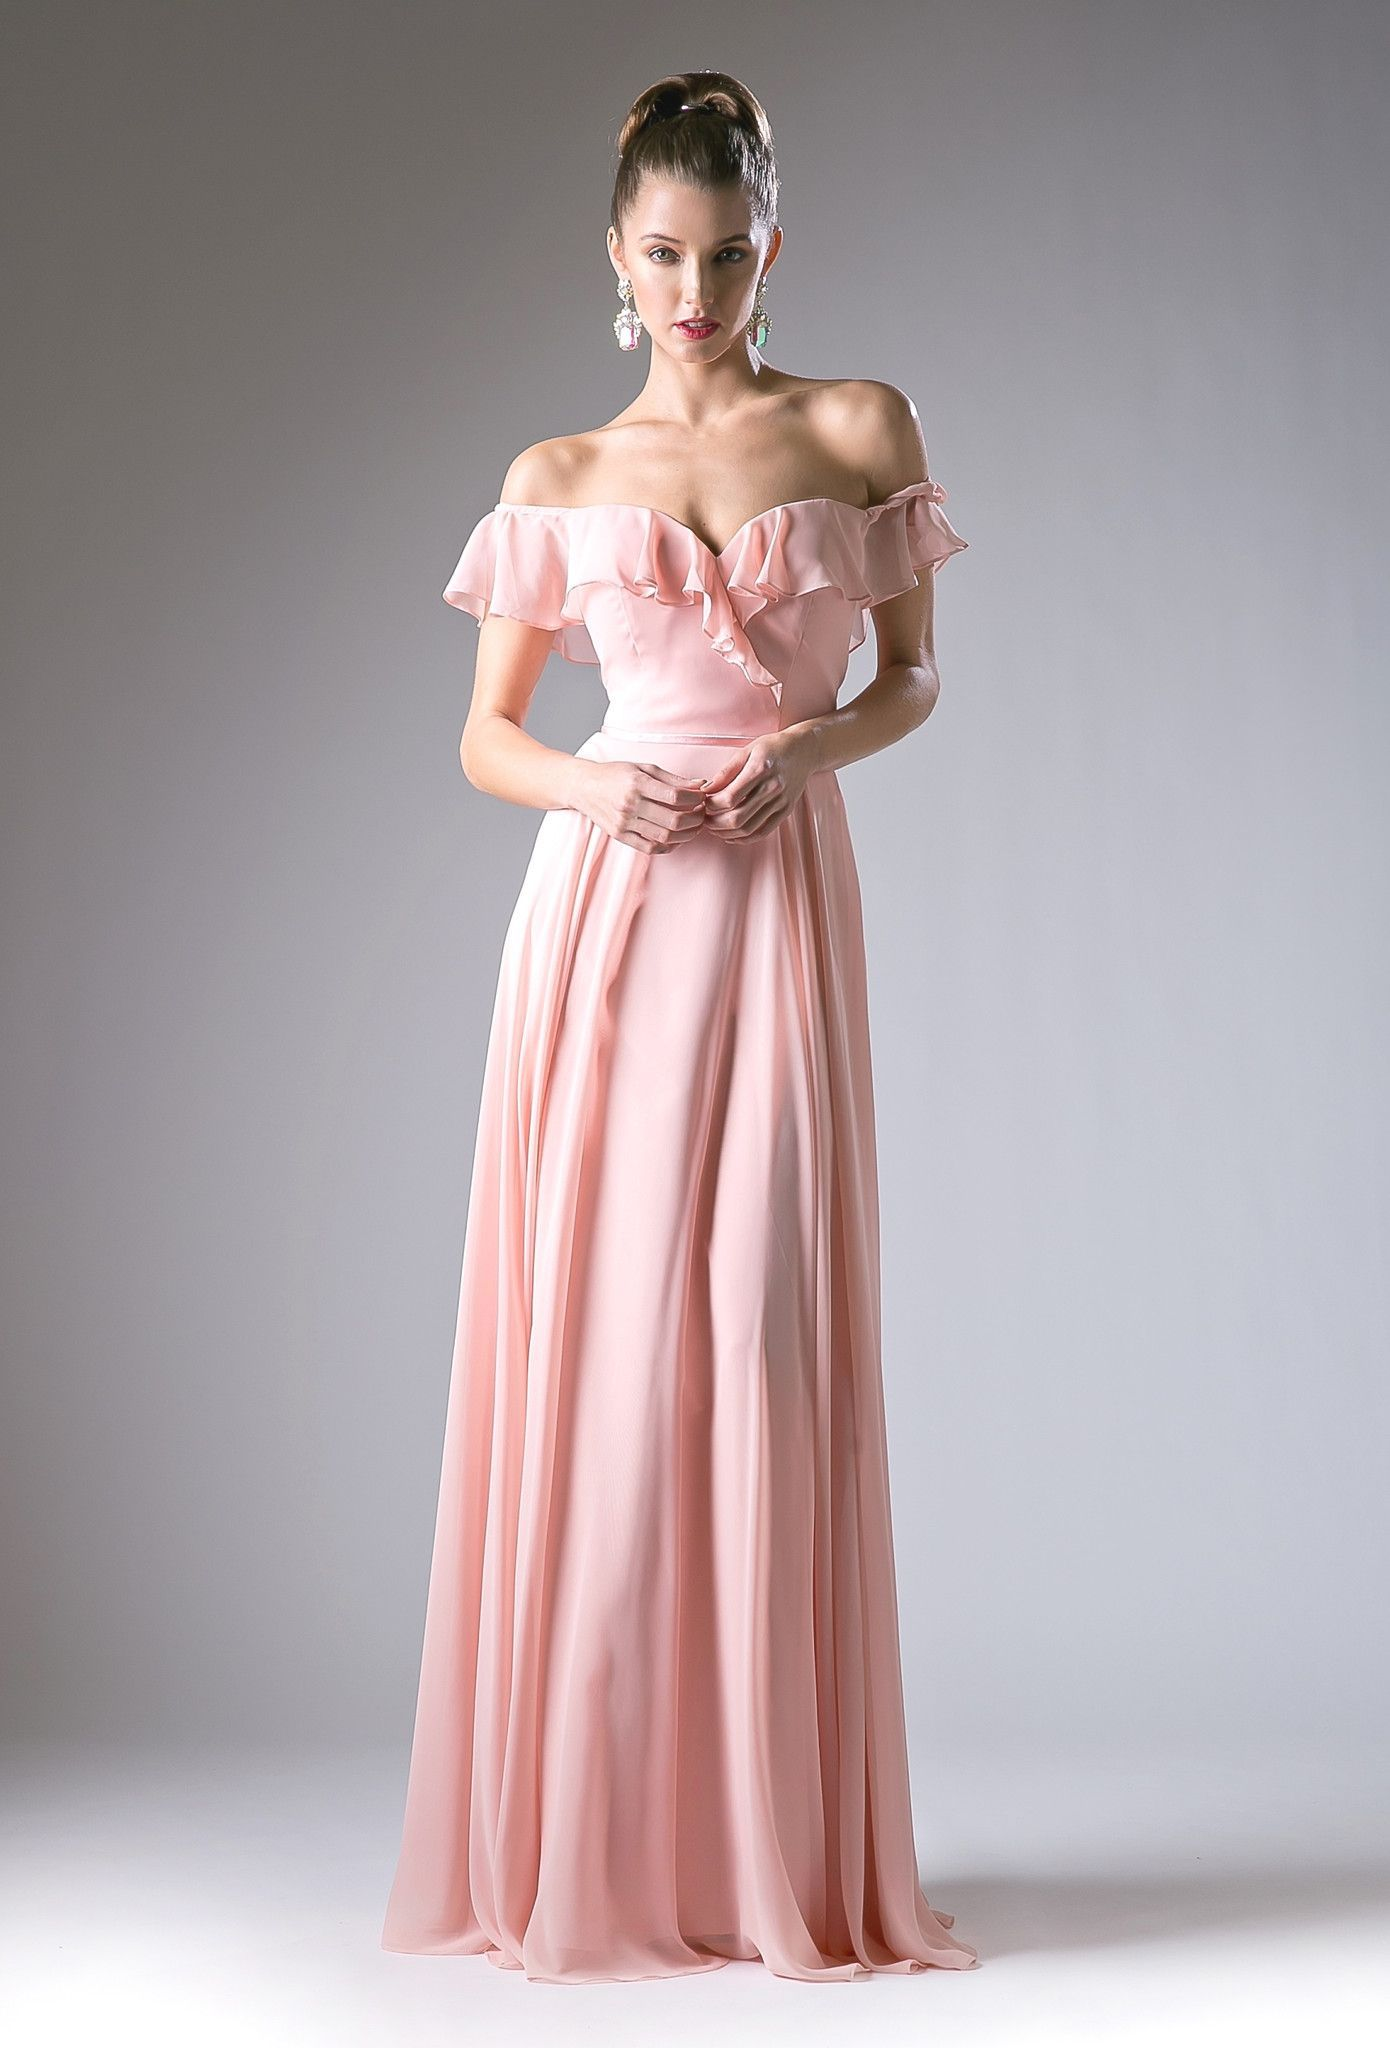 Long ruffled off the shoulder dress by cinderella divine cj in